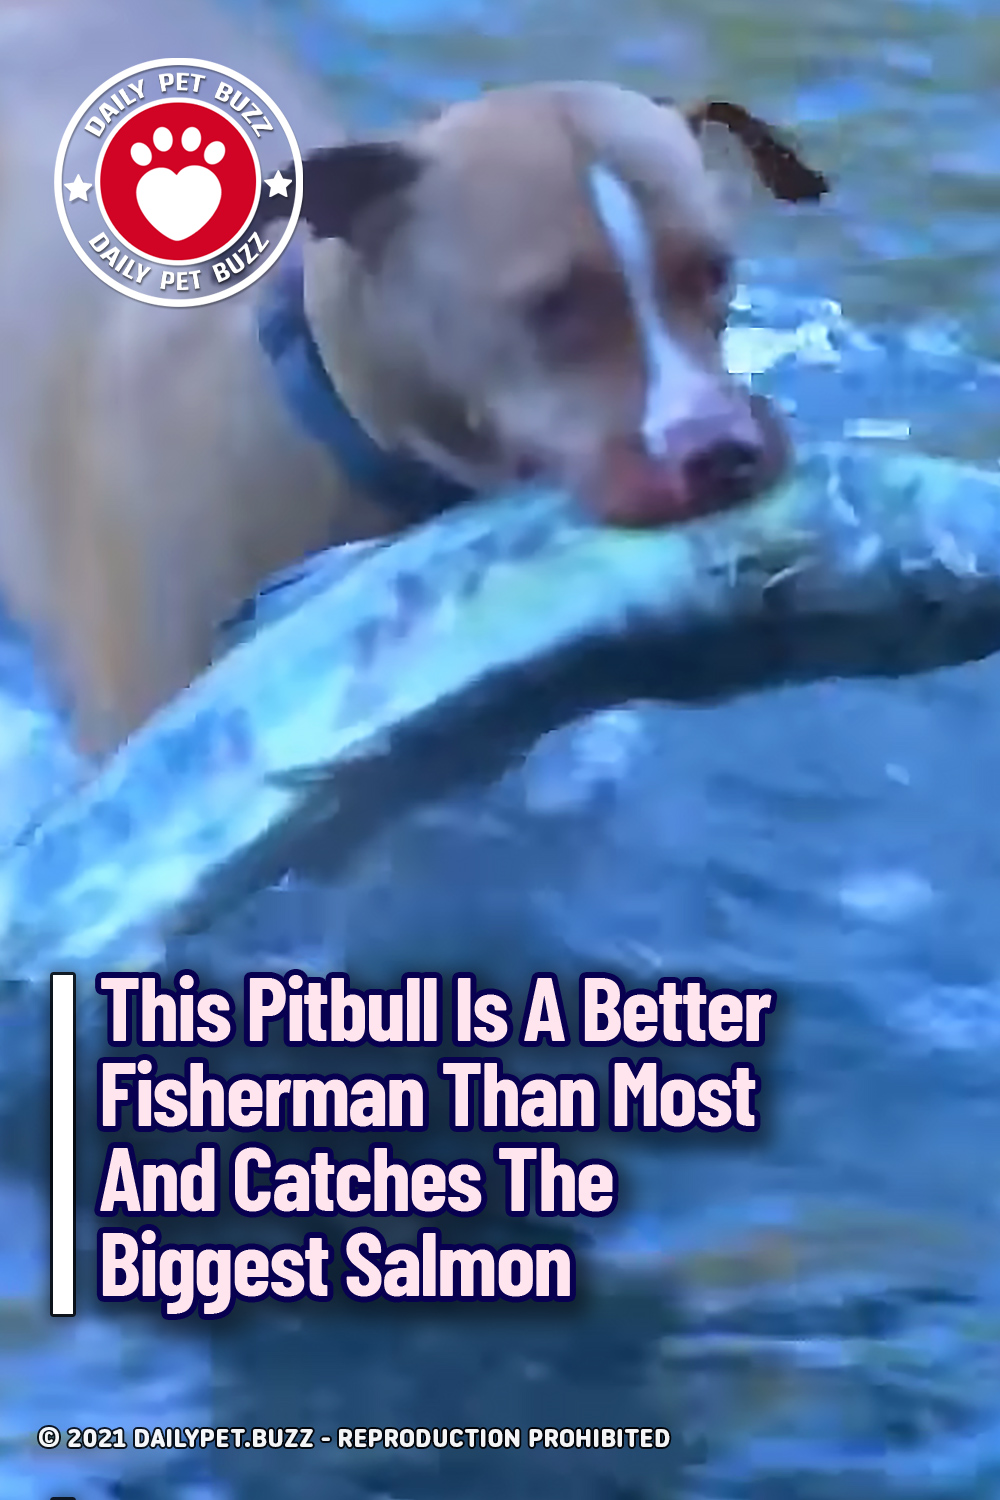 This Pitbull Is A Better Fisherman Than Most And Catches The Biggest Salmon